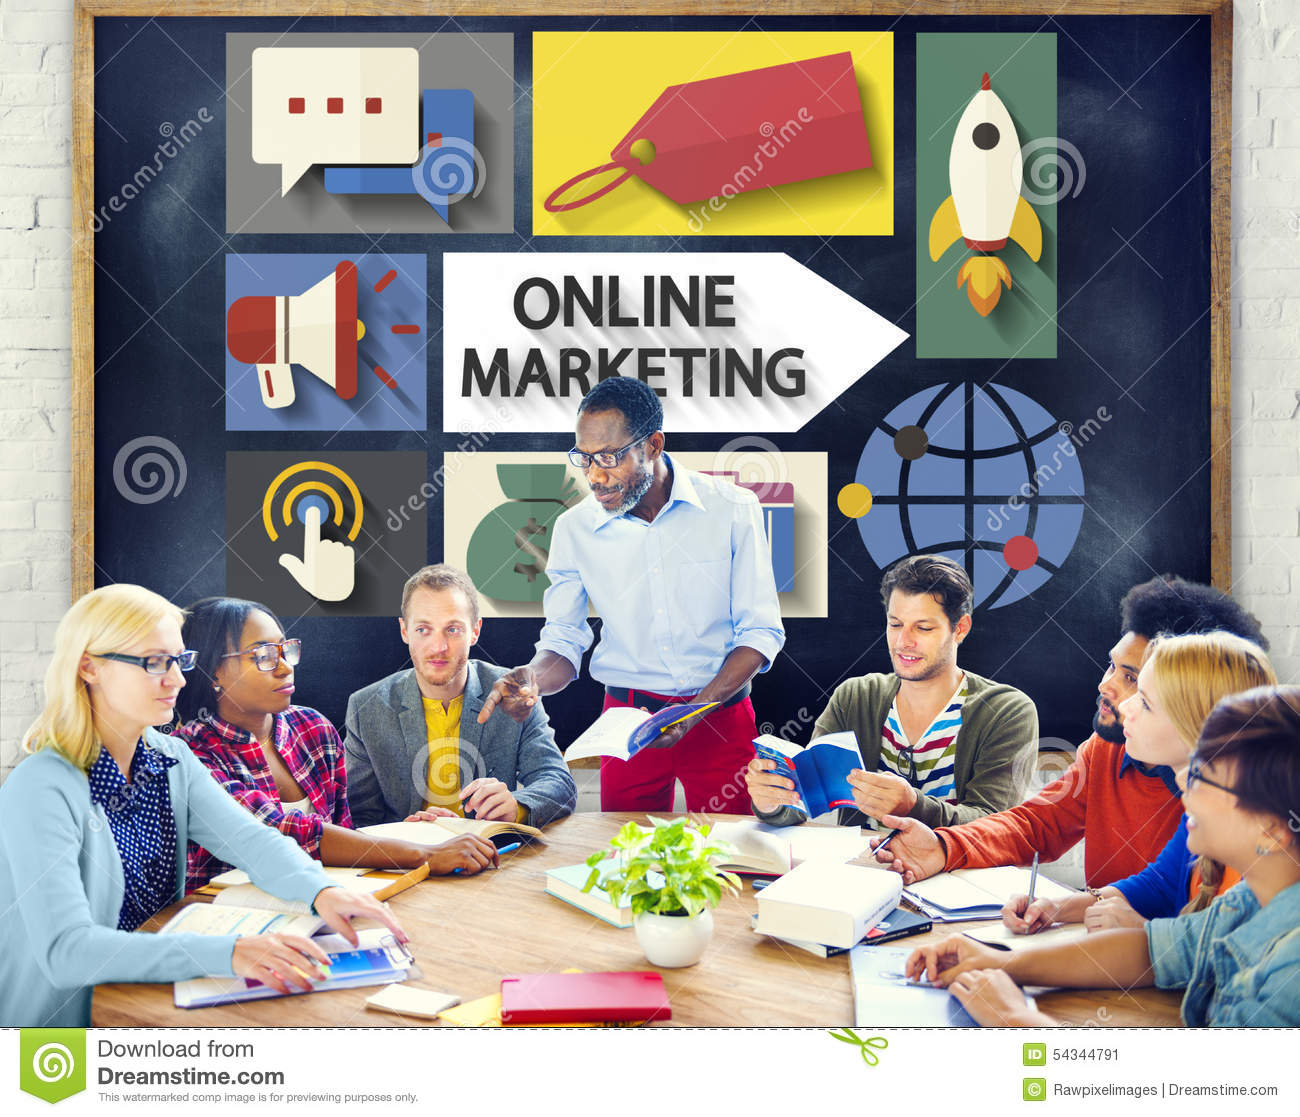 Marketing online Brandmerkende Globale Mededeling die Concept analyseren